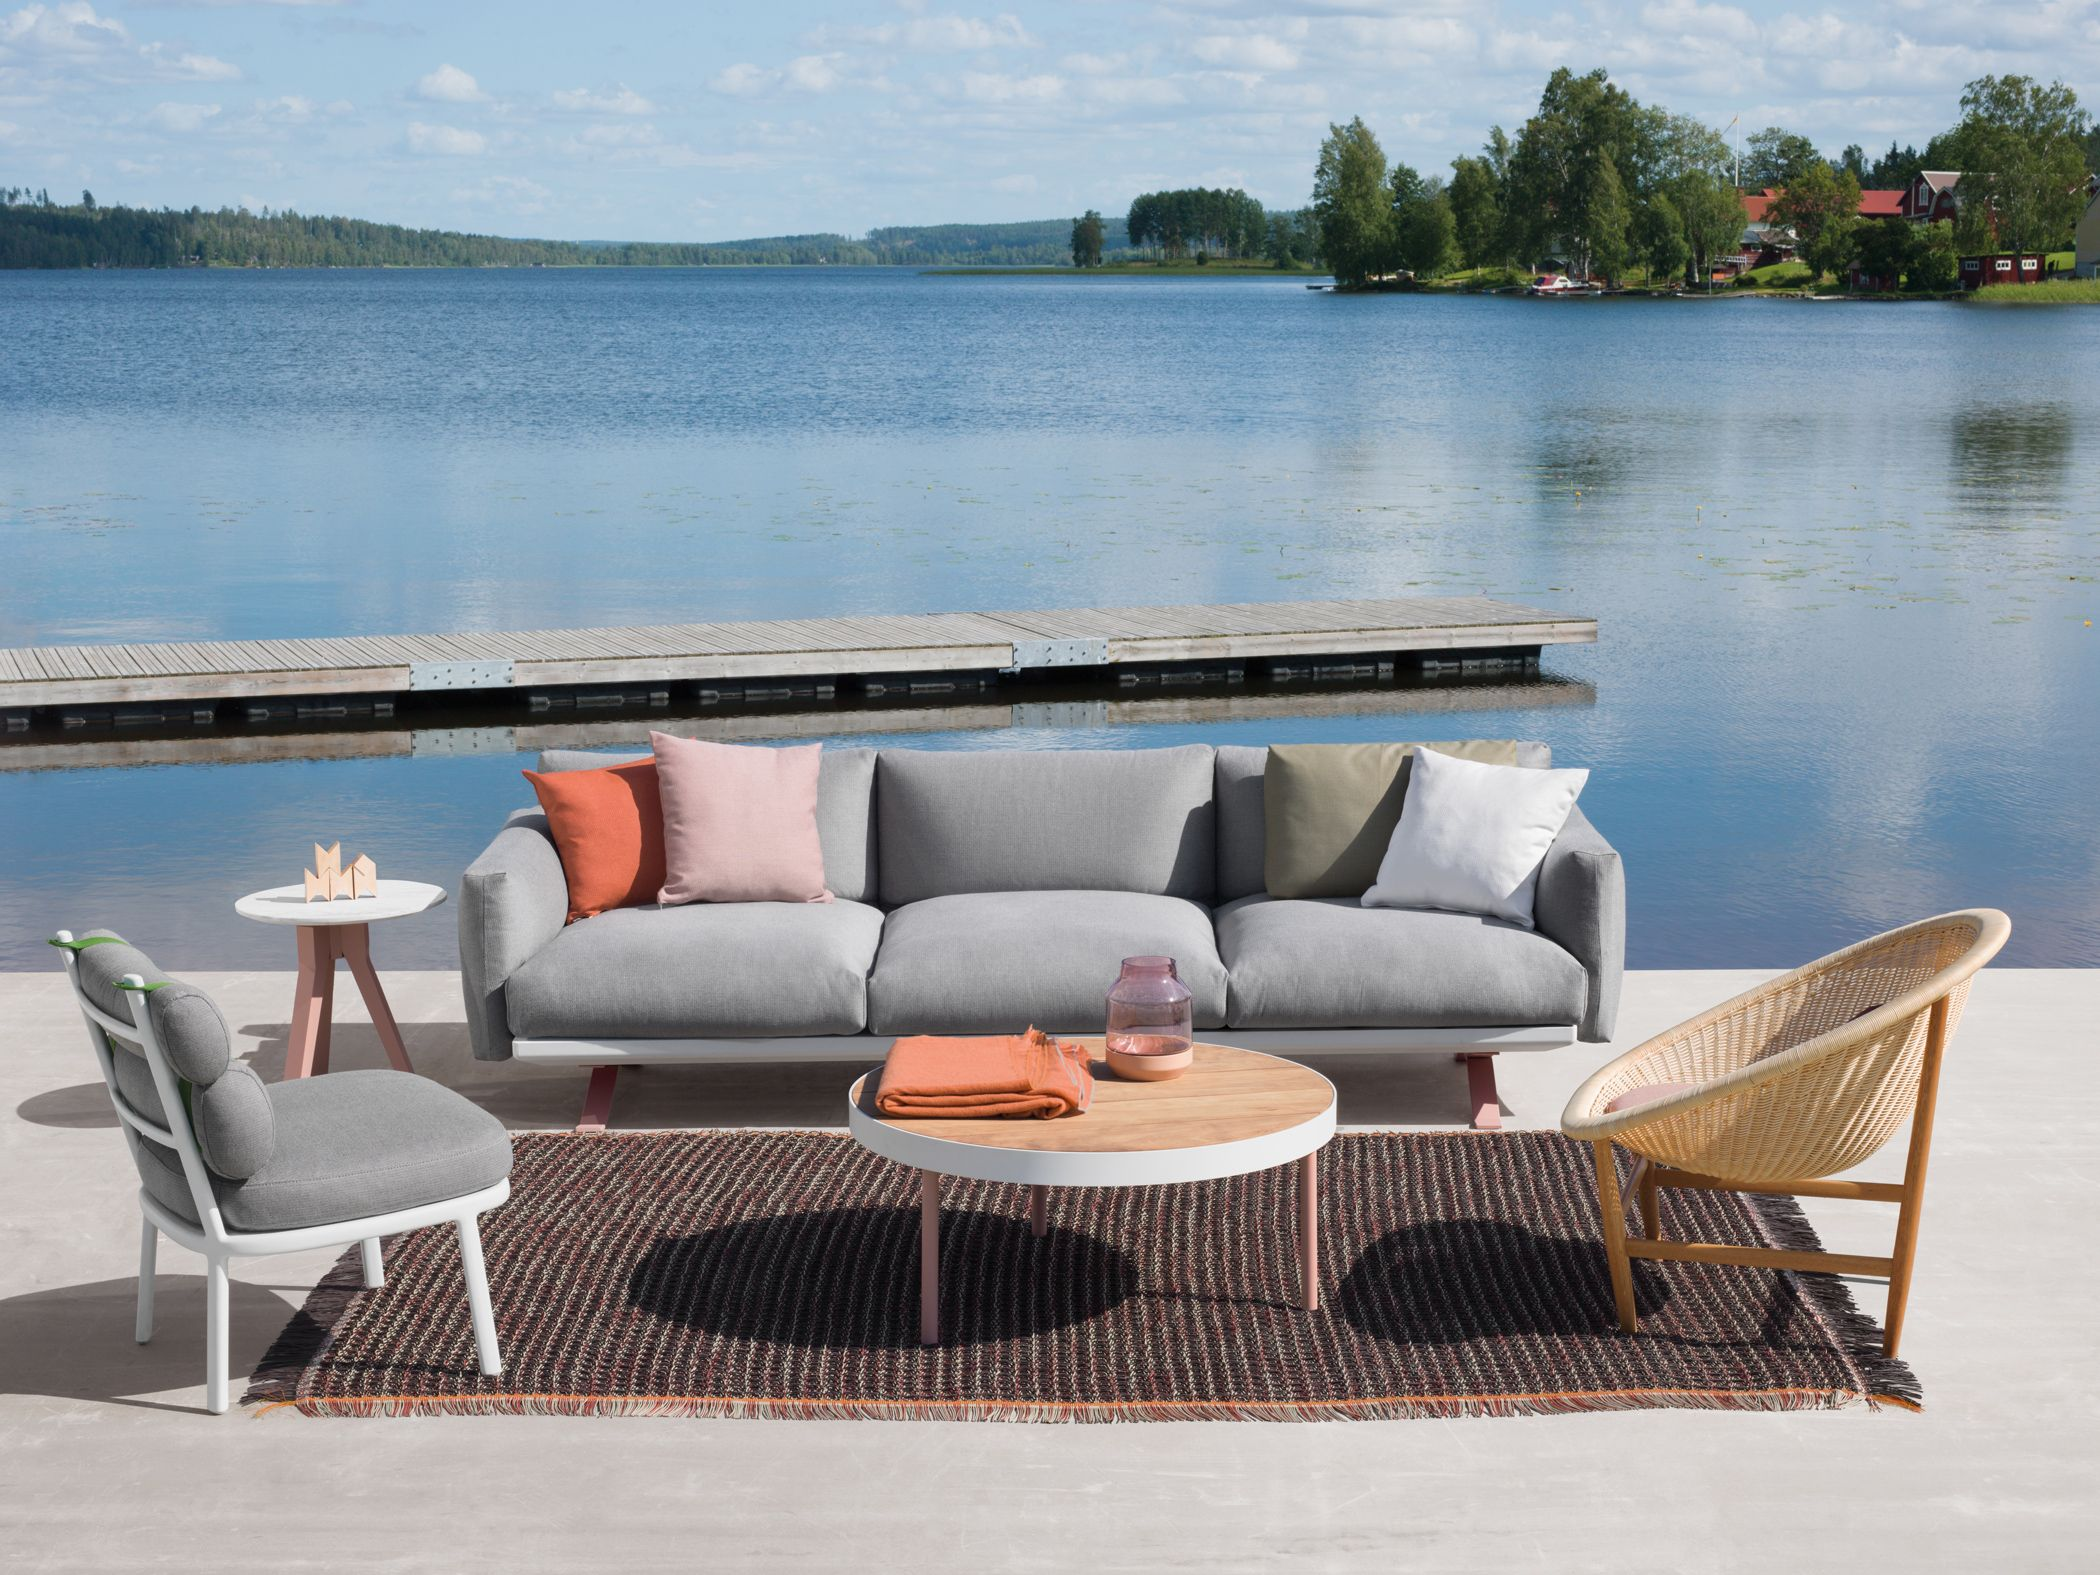 Outdoor Furniture - kettal 2016 - 50th anniversary catalogue | HOME ...